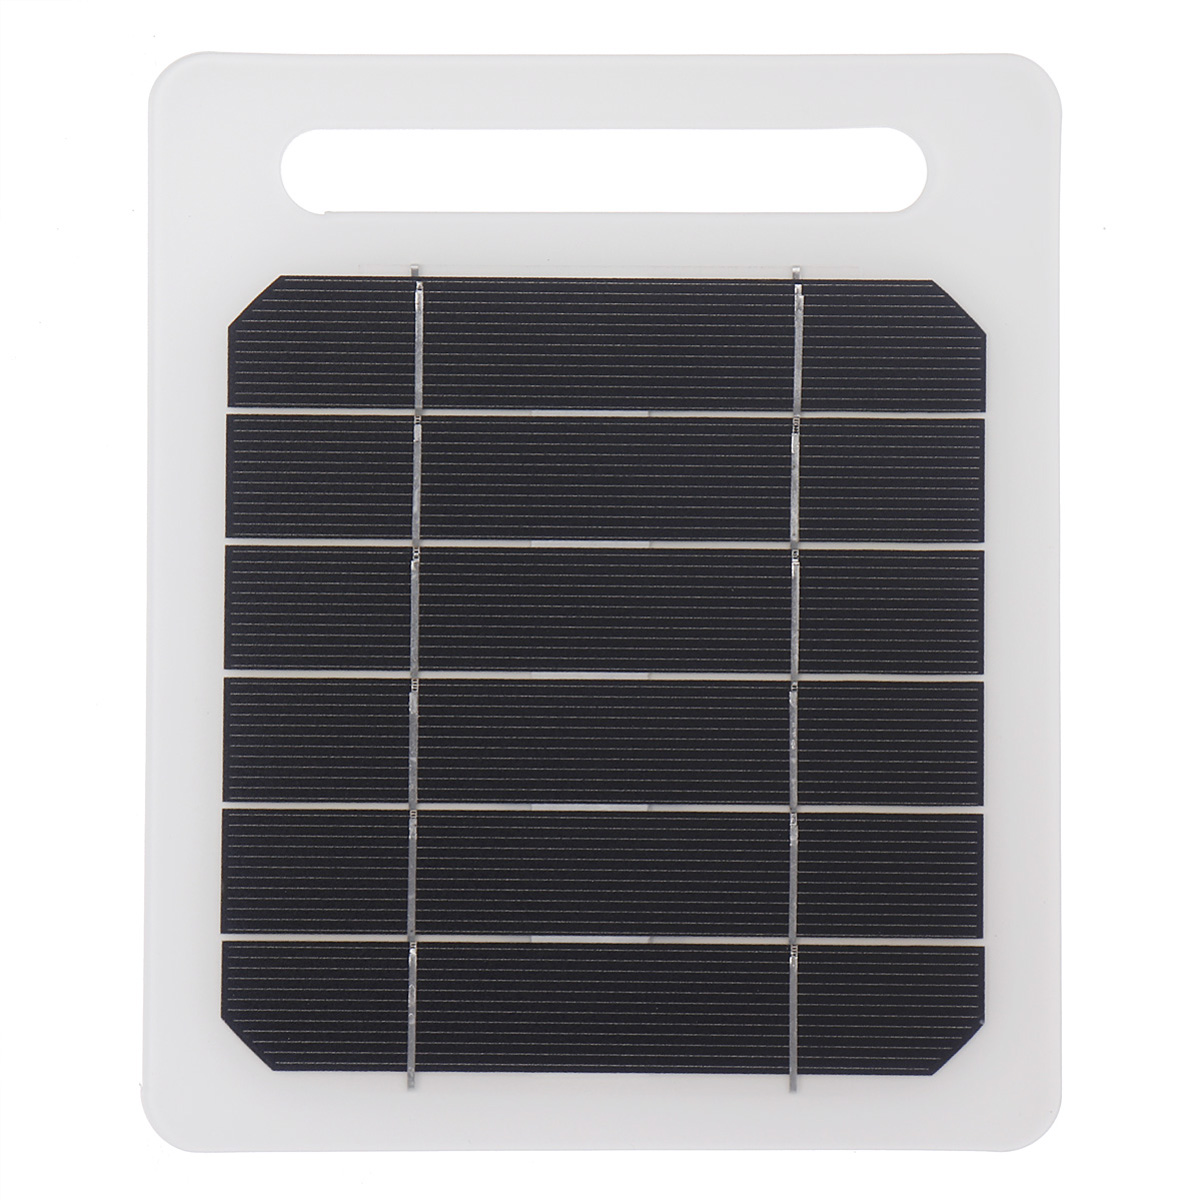 3W Monocrystalline Solar Panel Cell Module Kit Waterproof with USB Ports Mobile Phone Charging